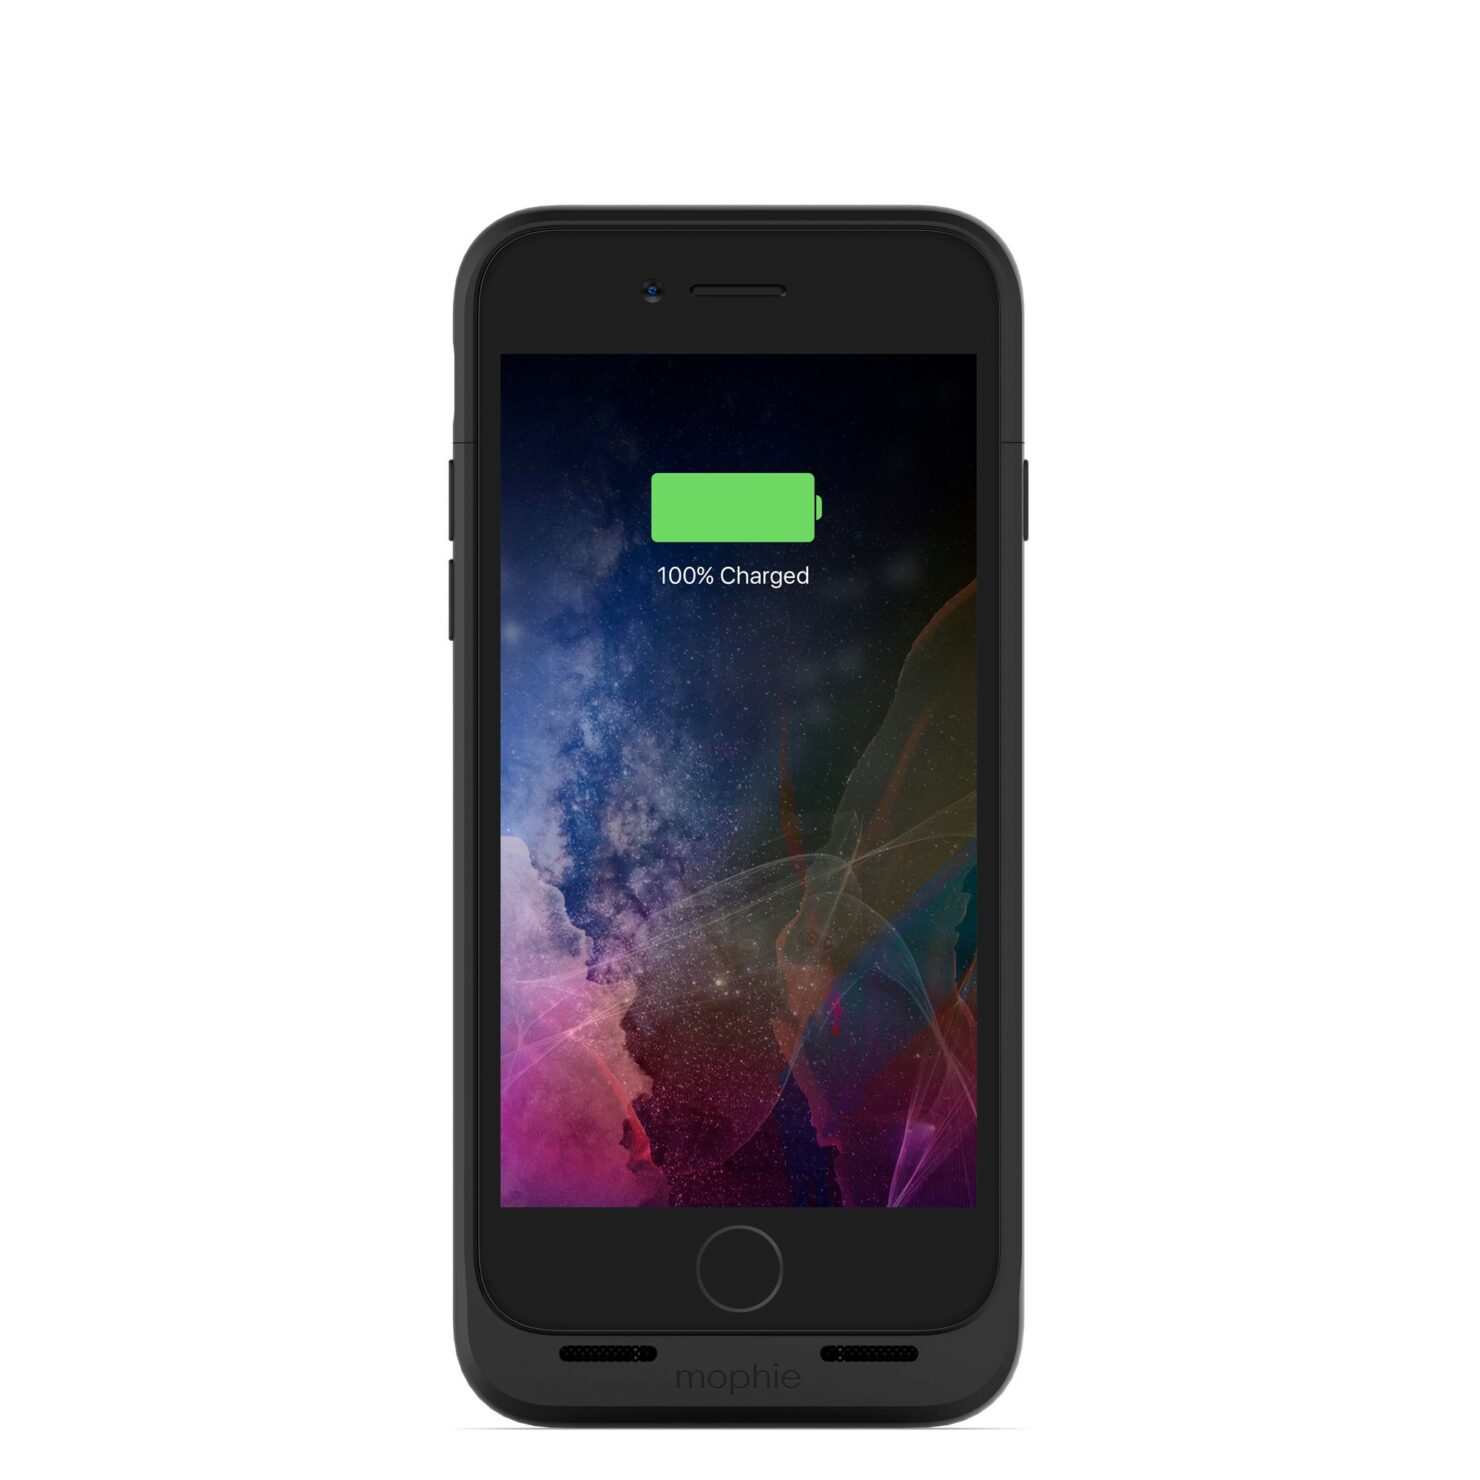 mophie-iphone-7-4